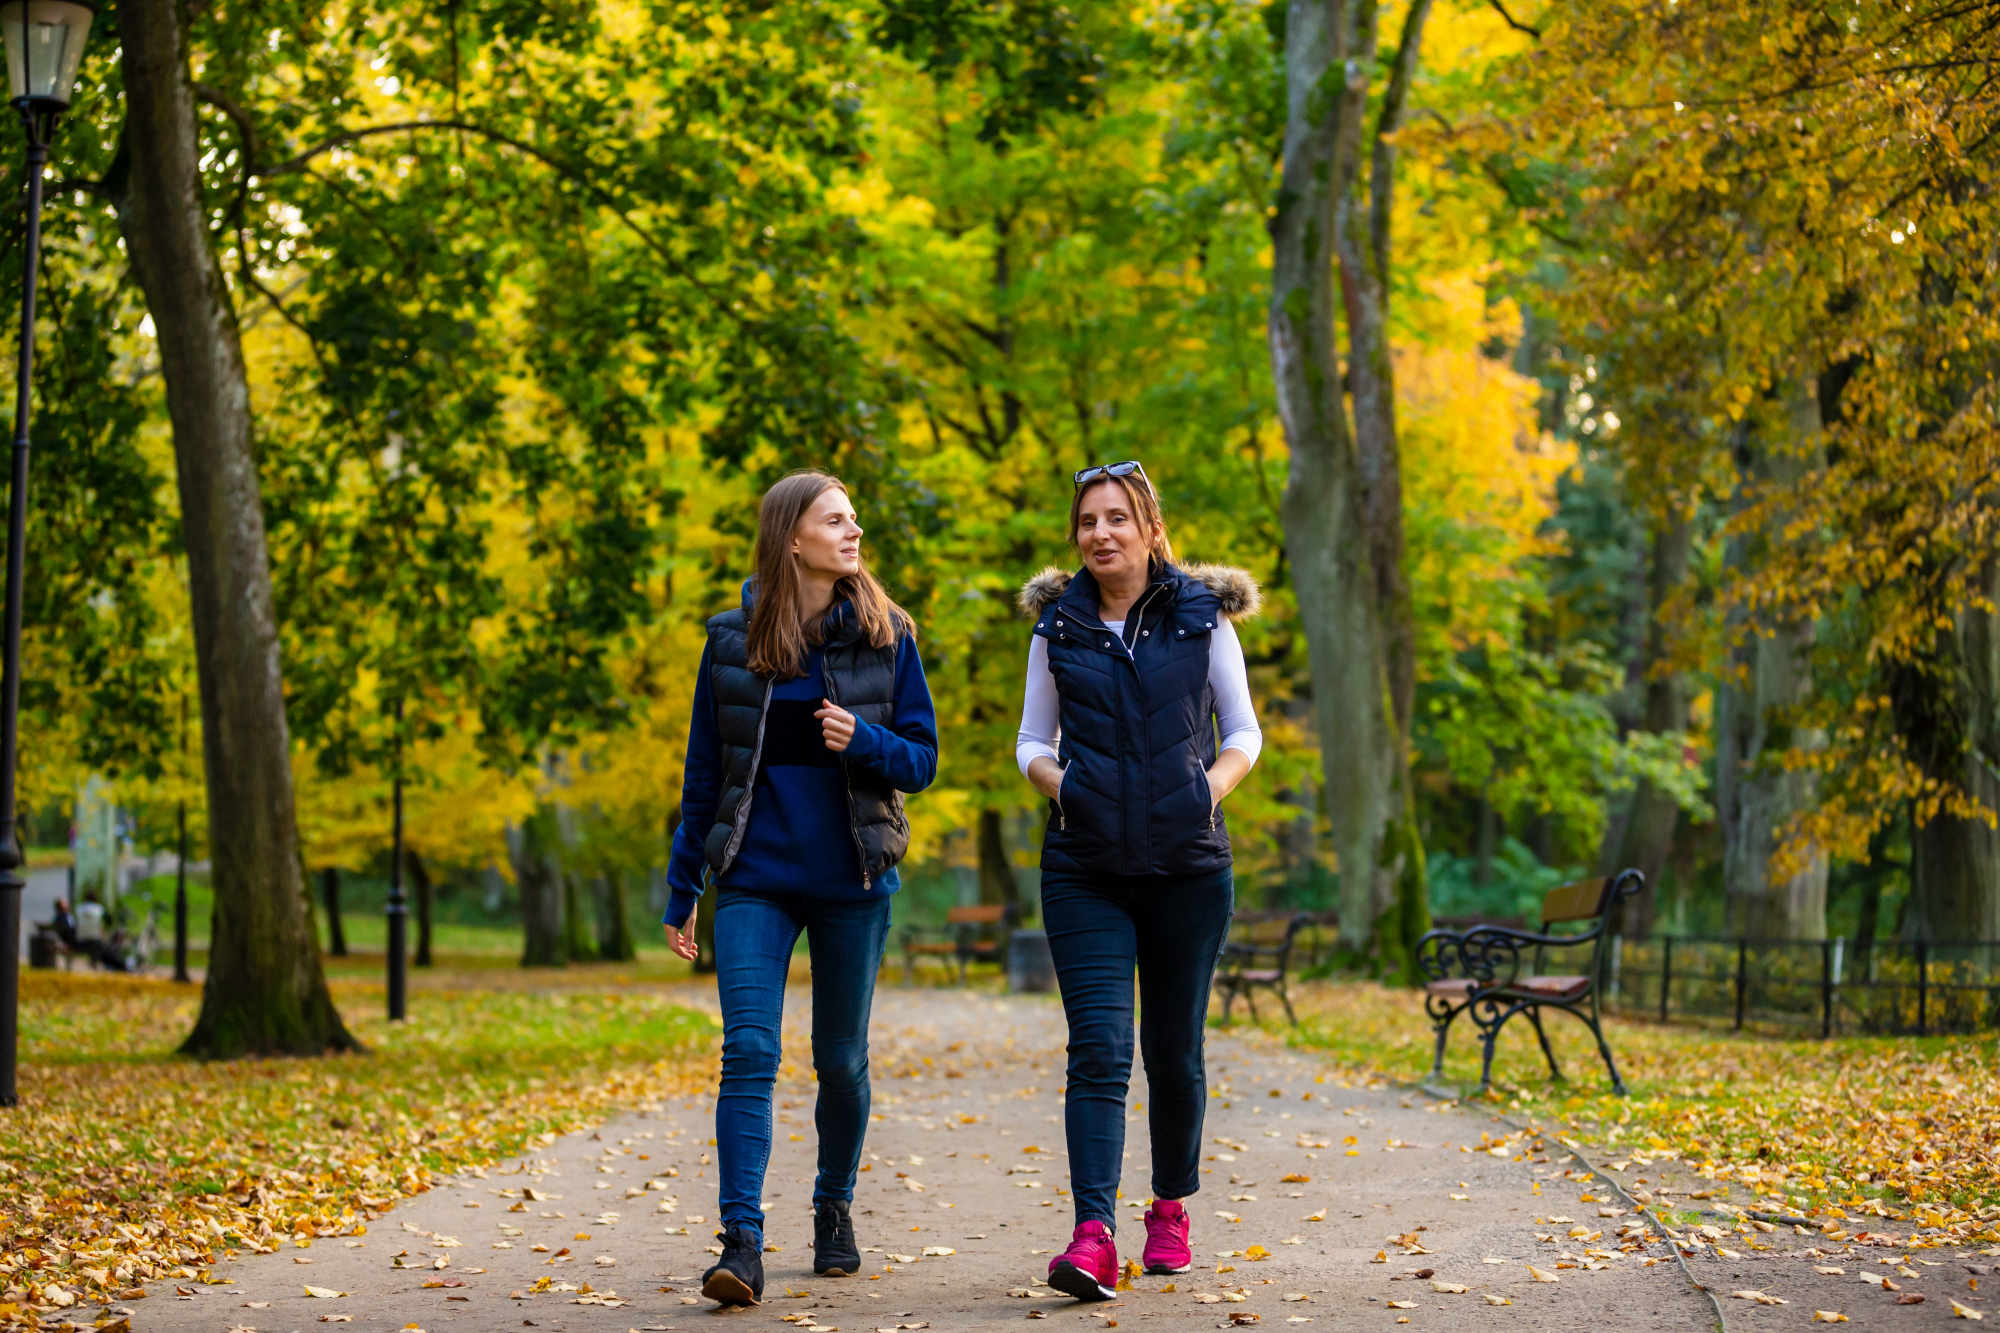 Two friends walking in a city park on a brisk fall day